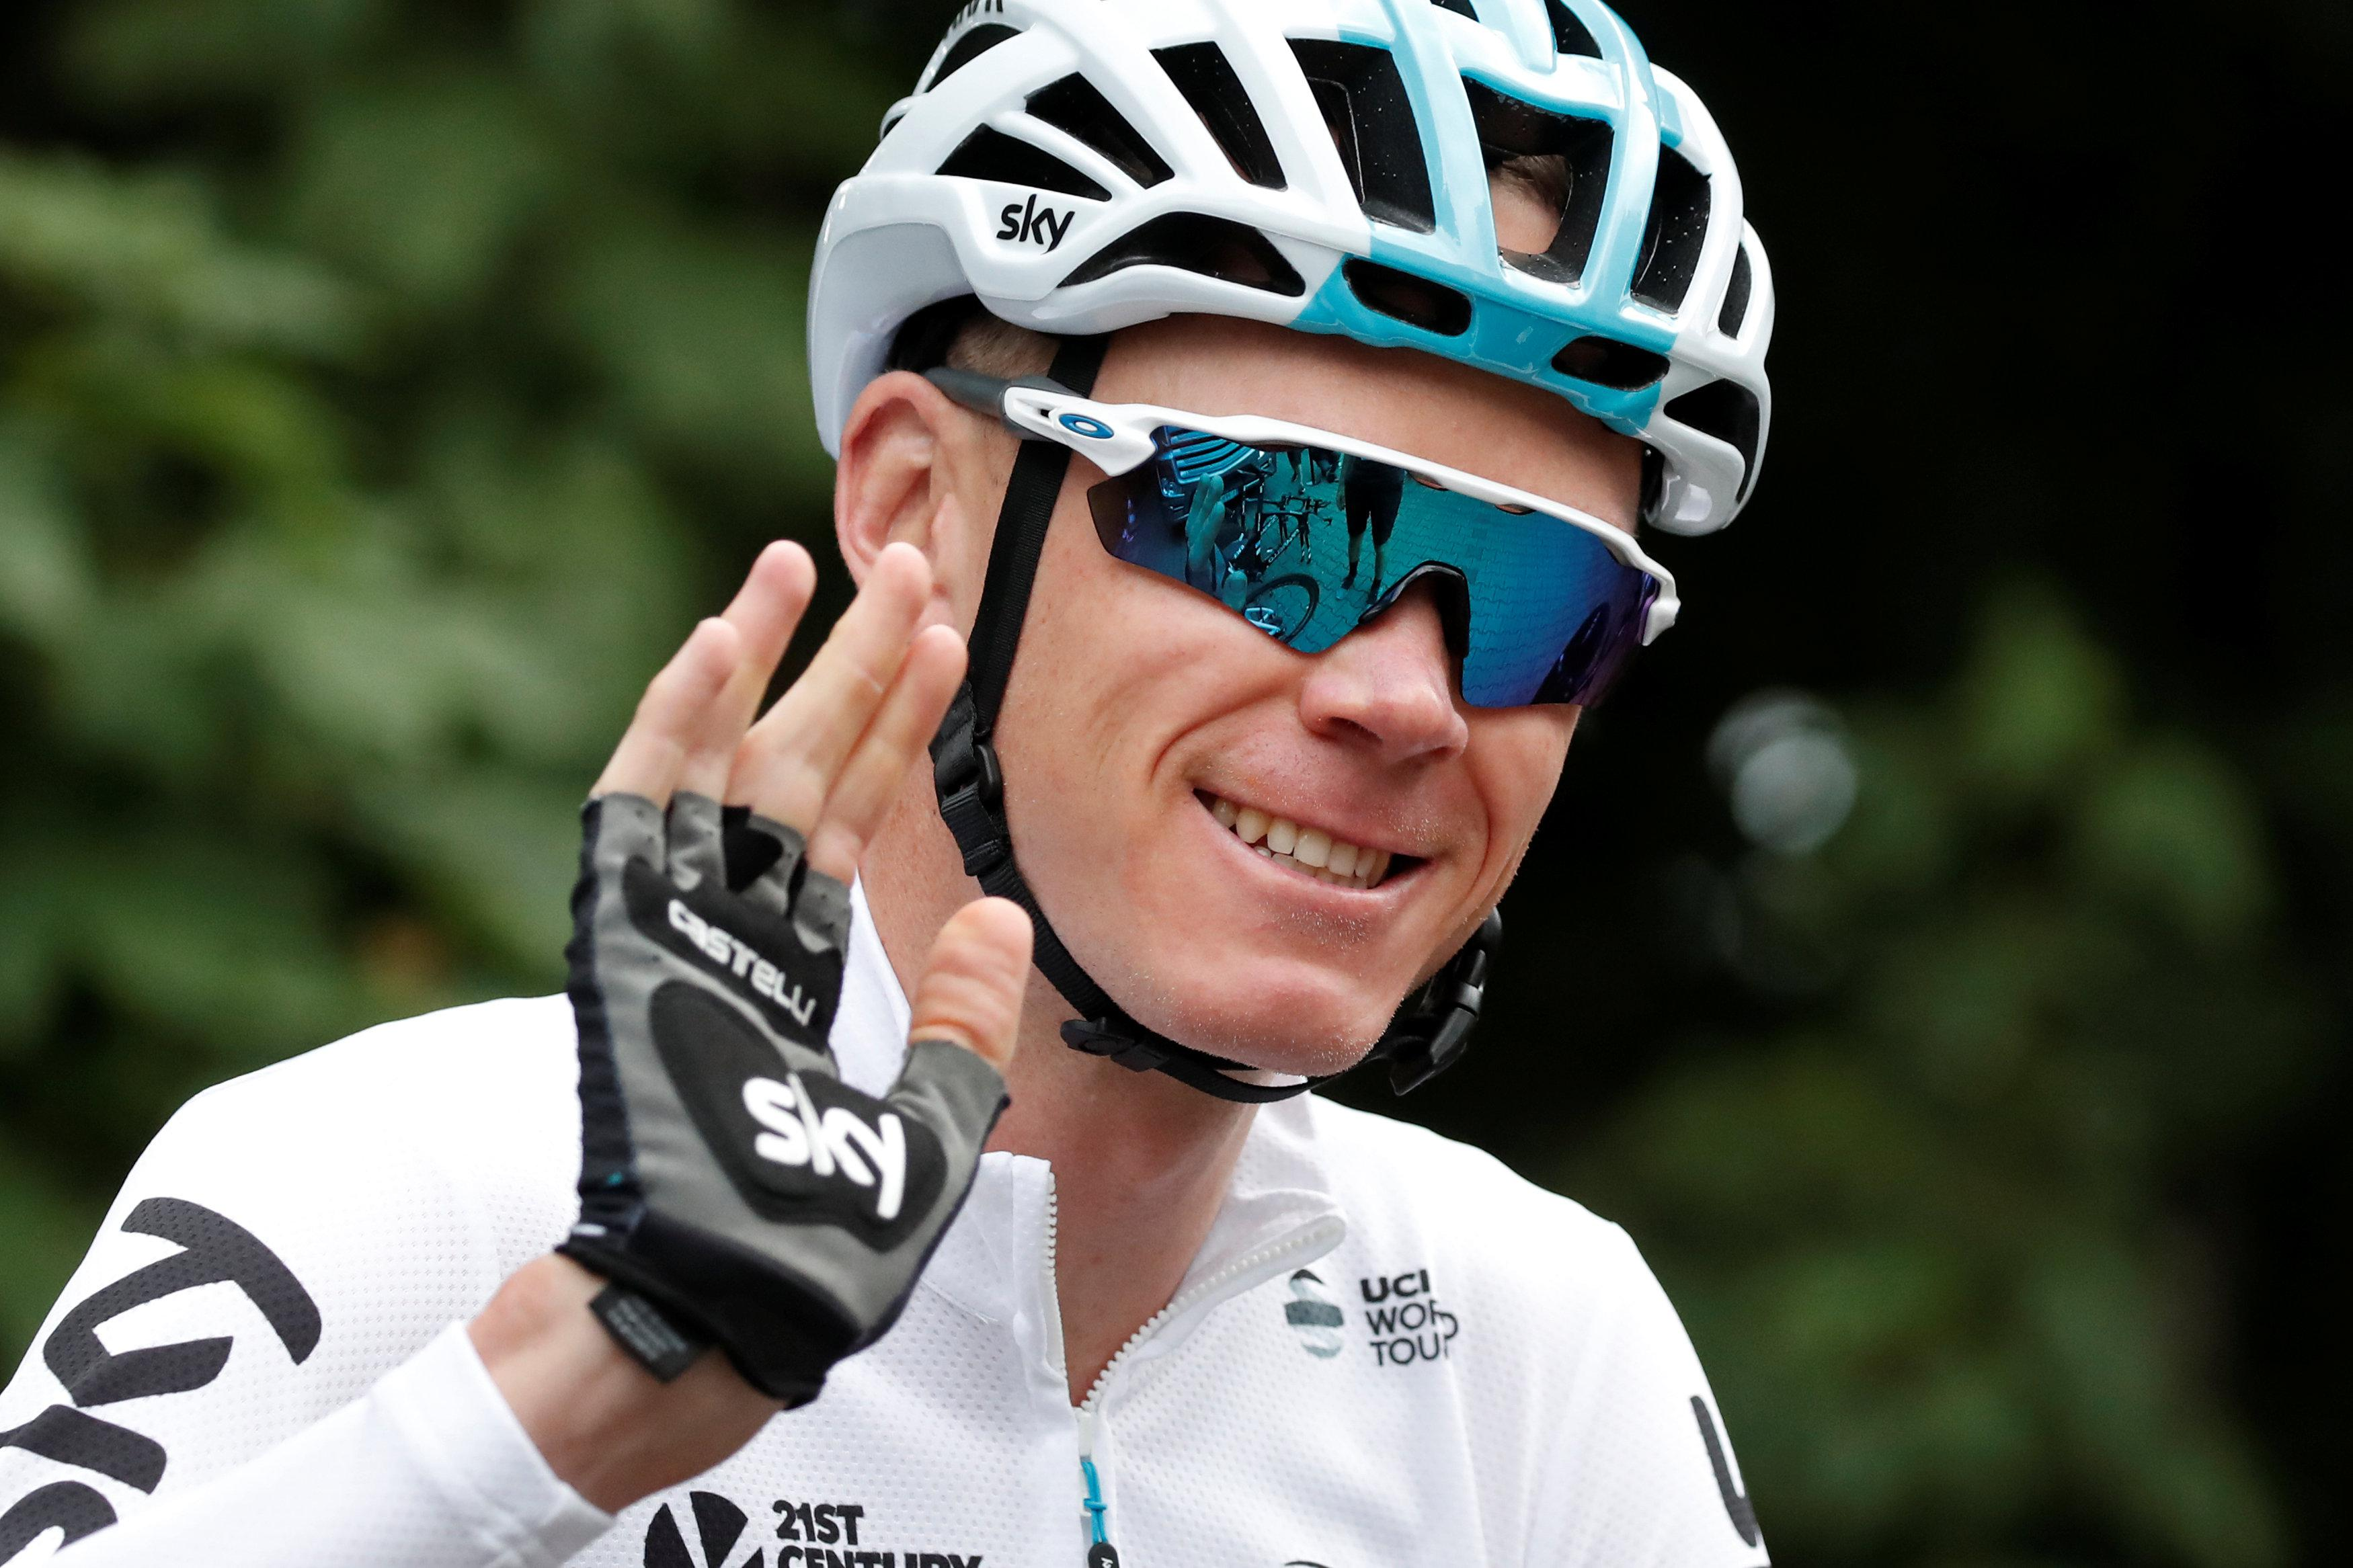 Chris Froome has begged fans not to give him a hard time on the roadside but his requests often fall on deaf ears